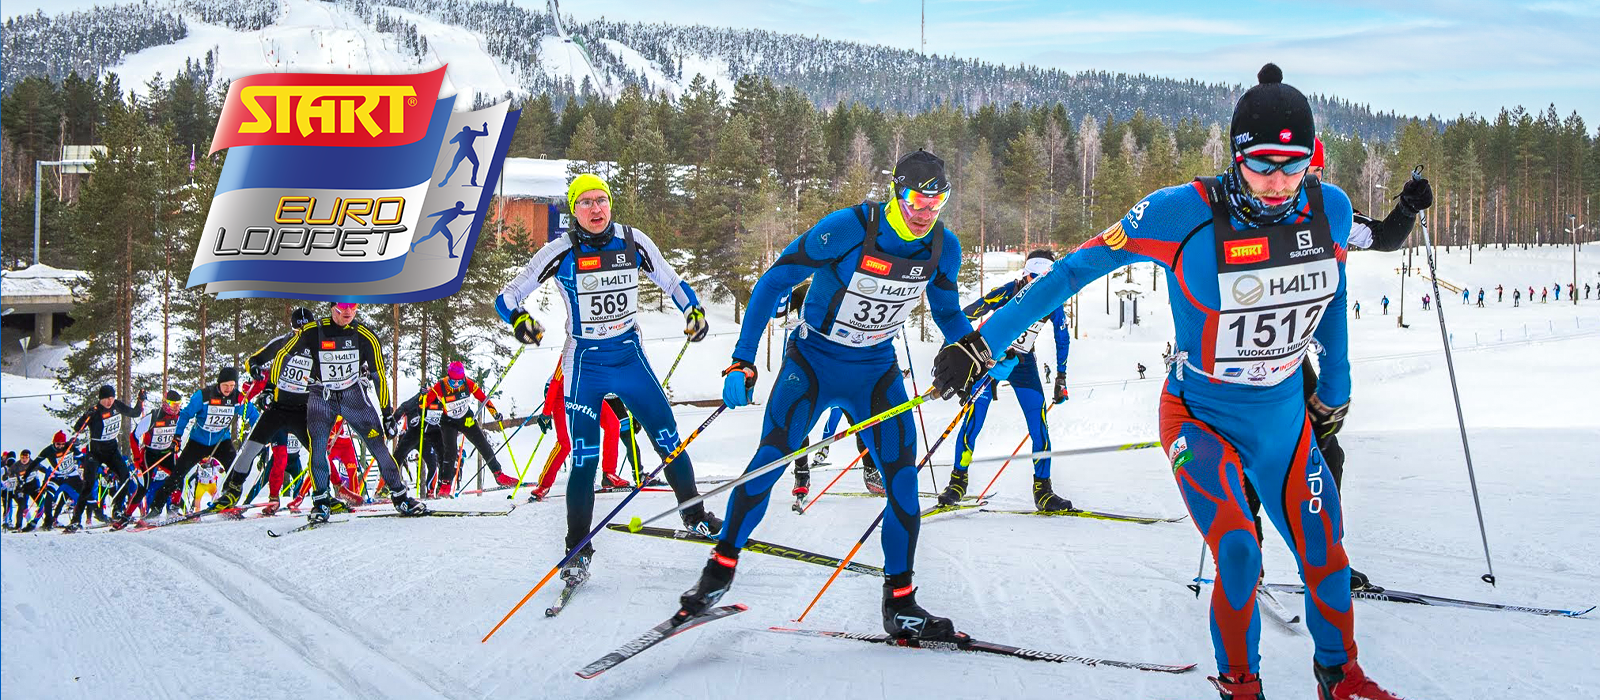 Your world of ski marathon